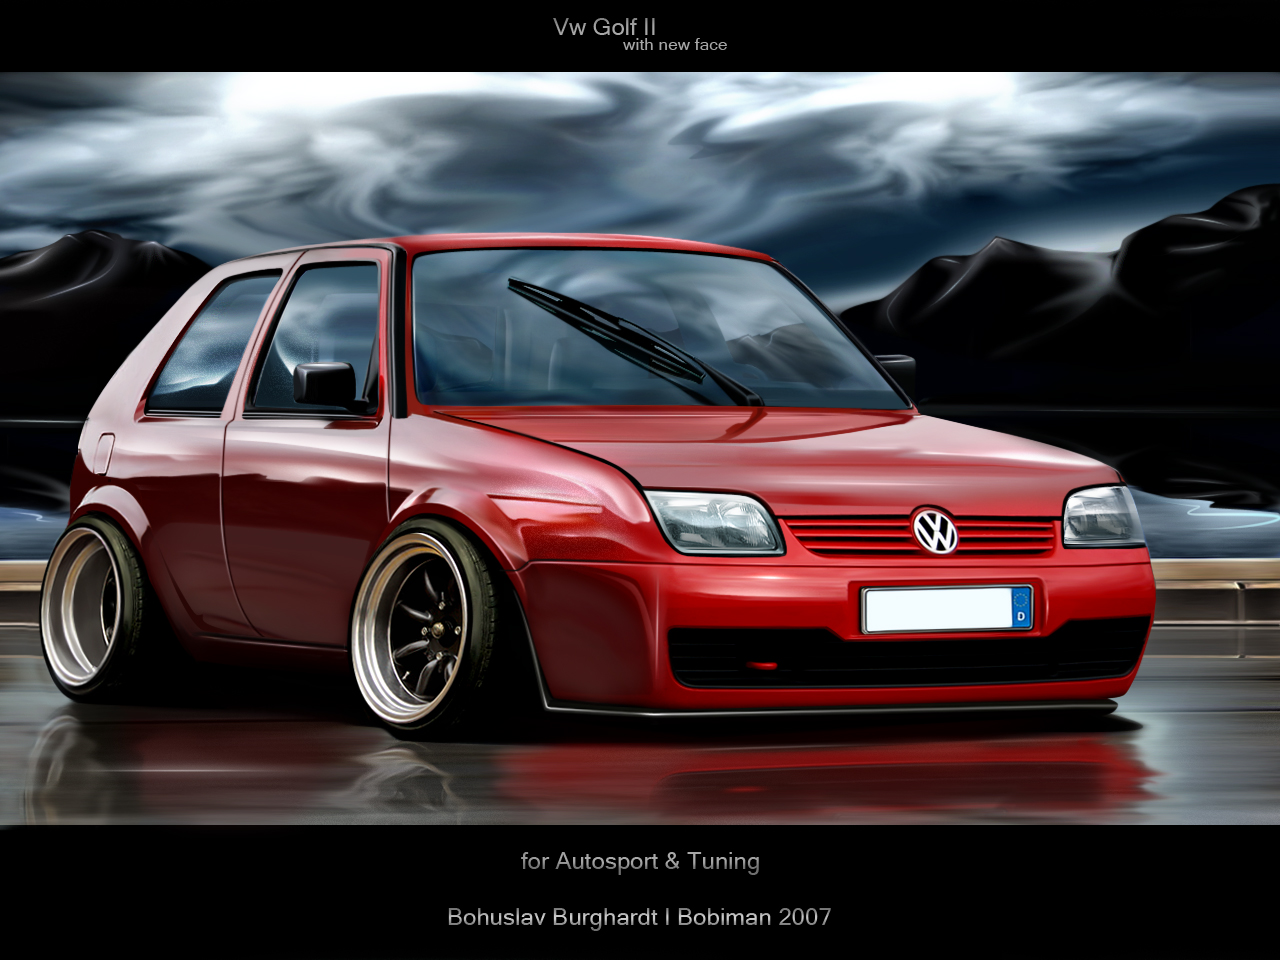 vw golf ii by bobiman on deviantart. Black Bedroom Furniture Sets. Home Design Ideas